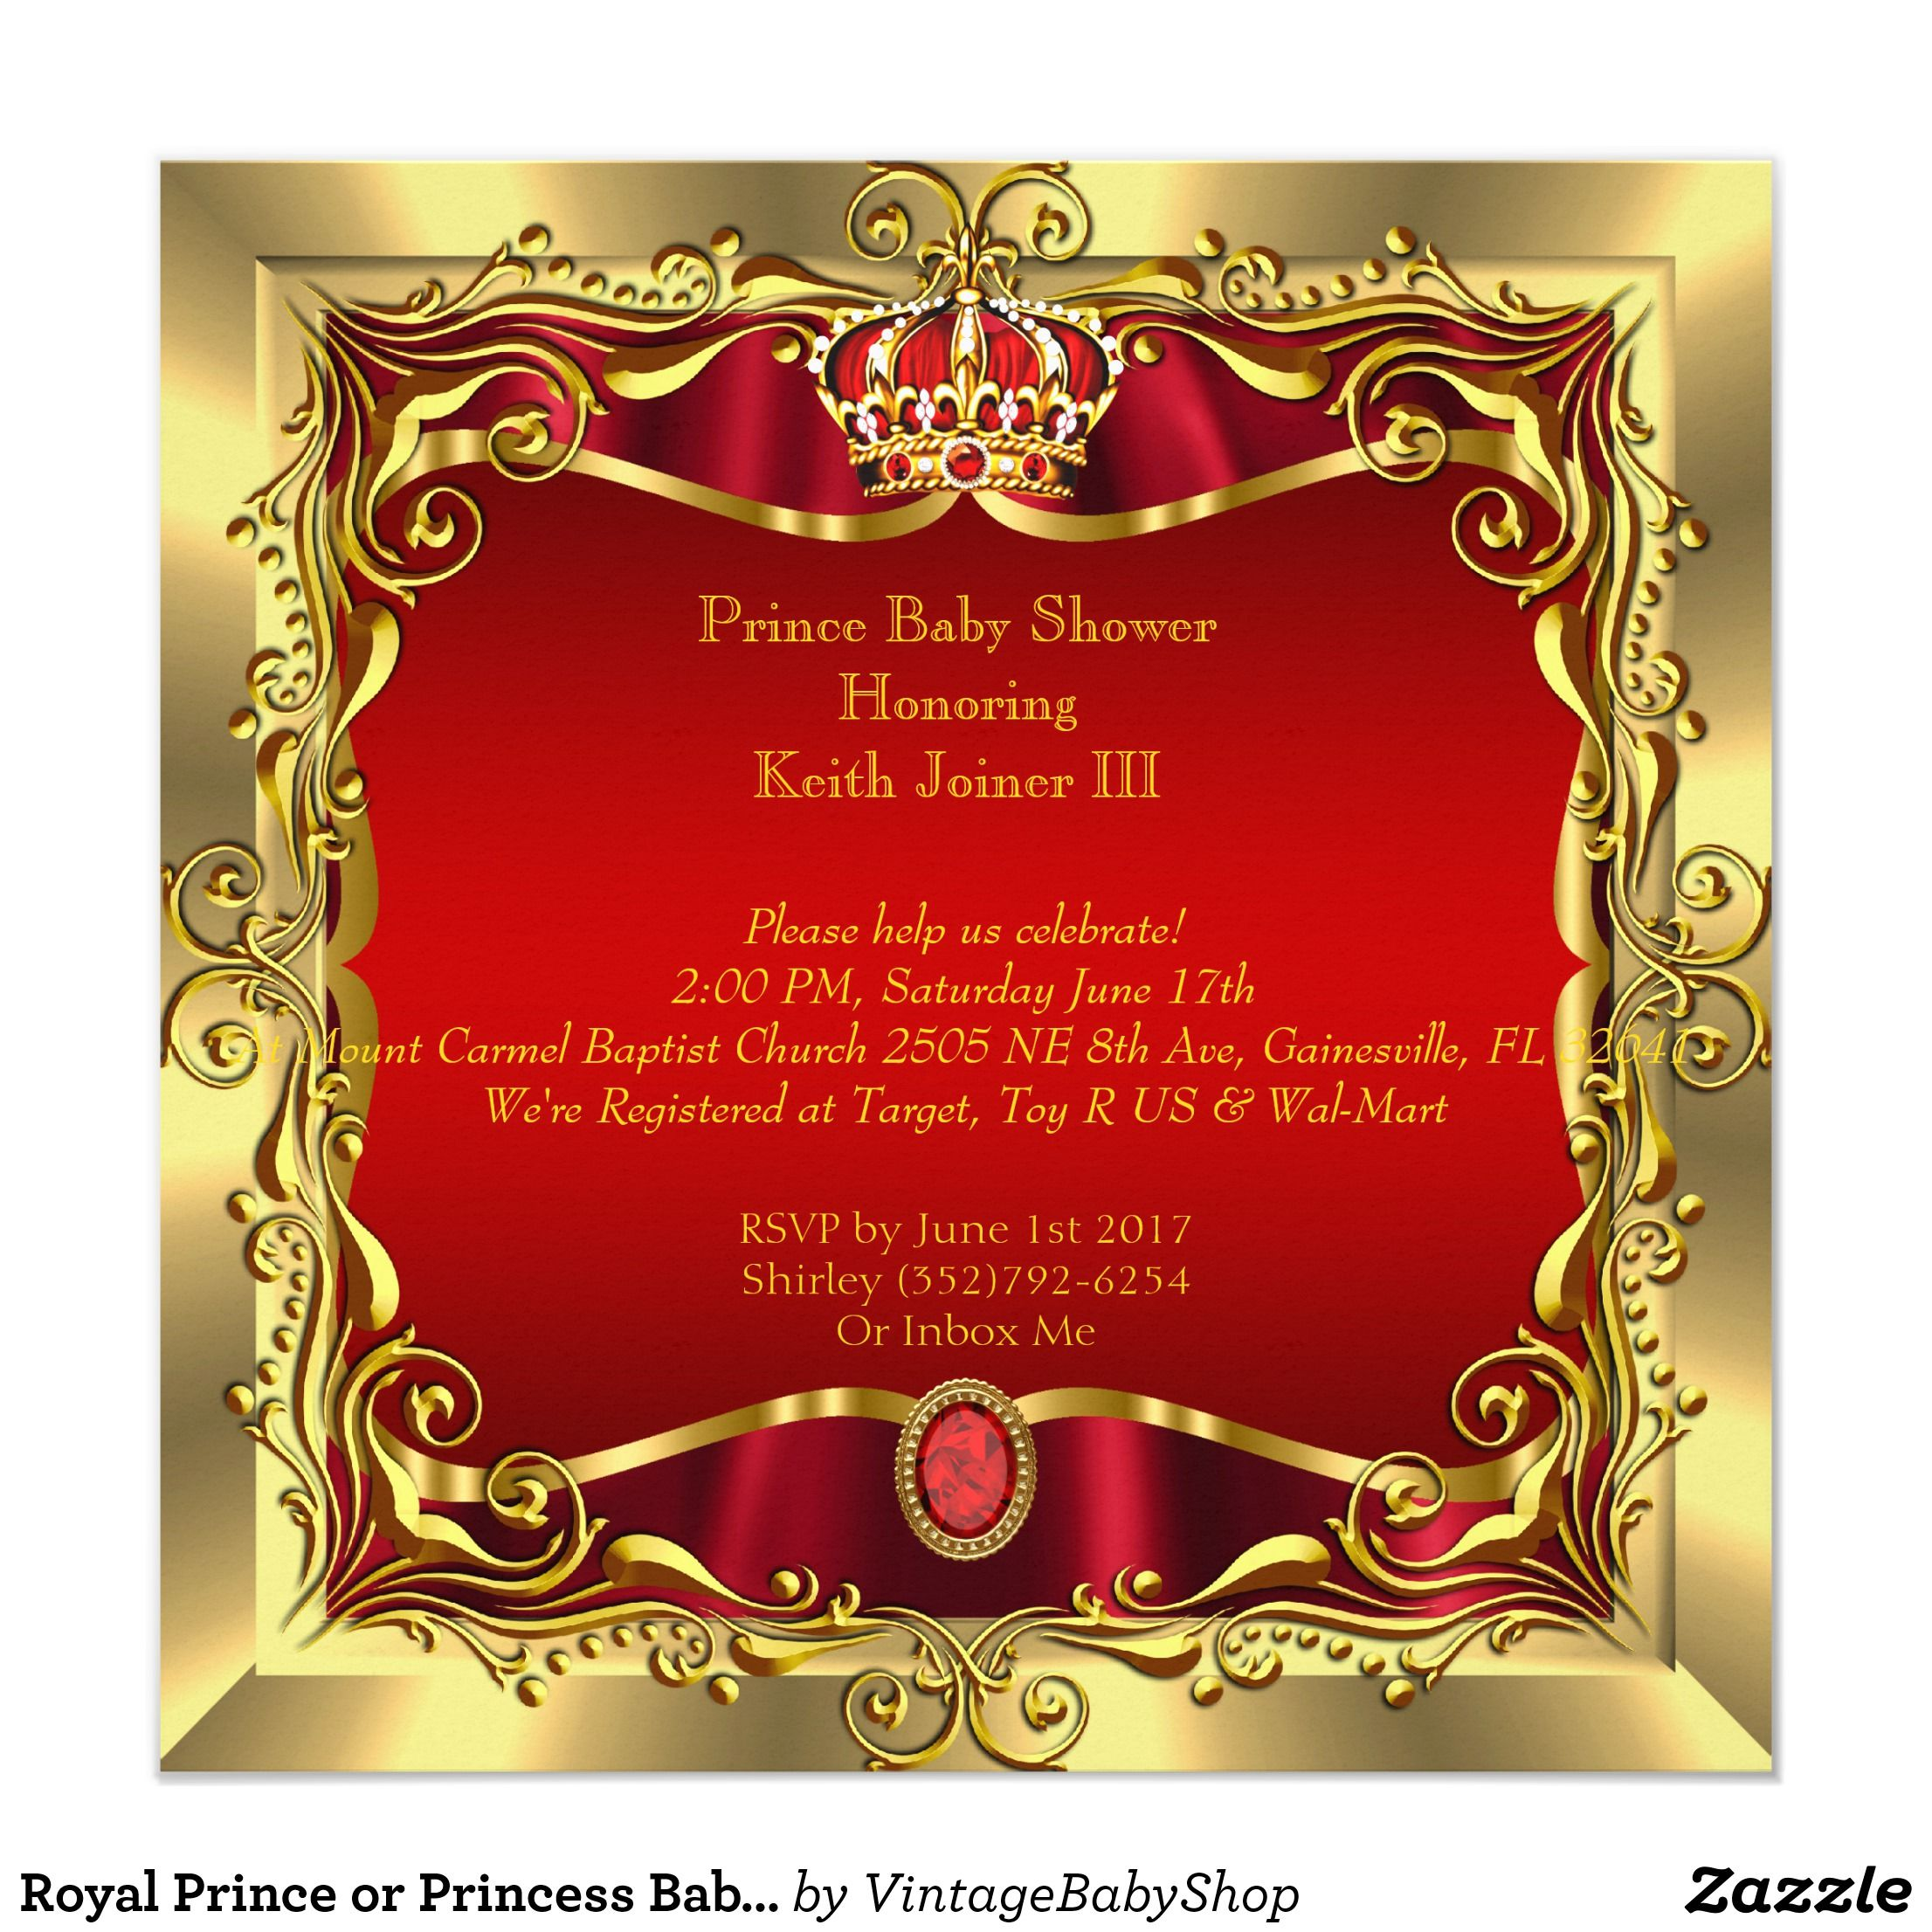 Royal Prince or Princess Baby Shower Red Gold Invitation | Pinterest ...